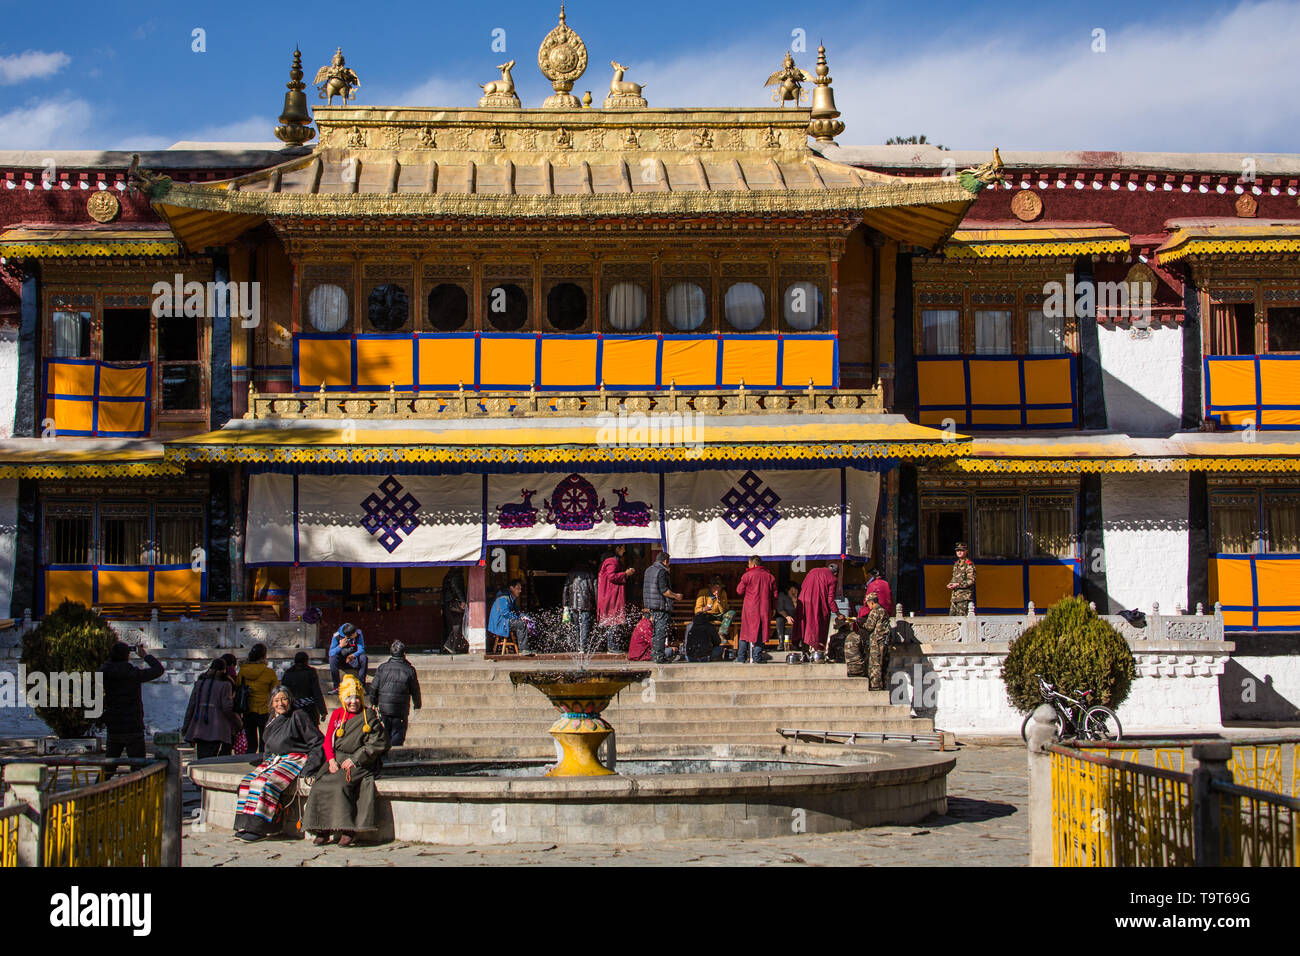 The Norbulingka Palace was the summer palace of the Dalai Lama from about 1755 until 1959.  It is part of the Historic Ensemble of the Potala Palace,  - Stock Image